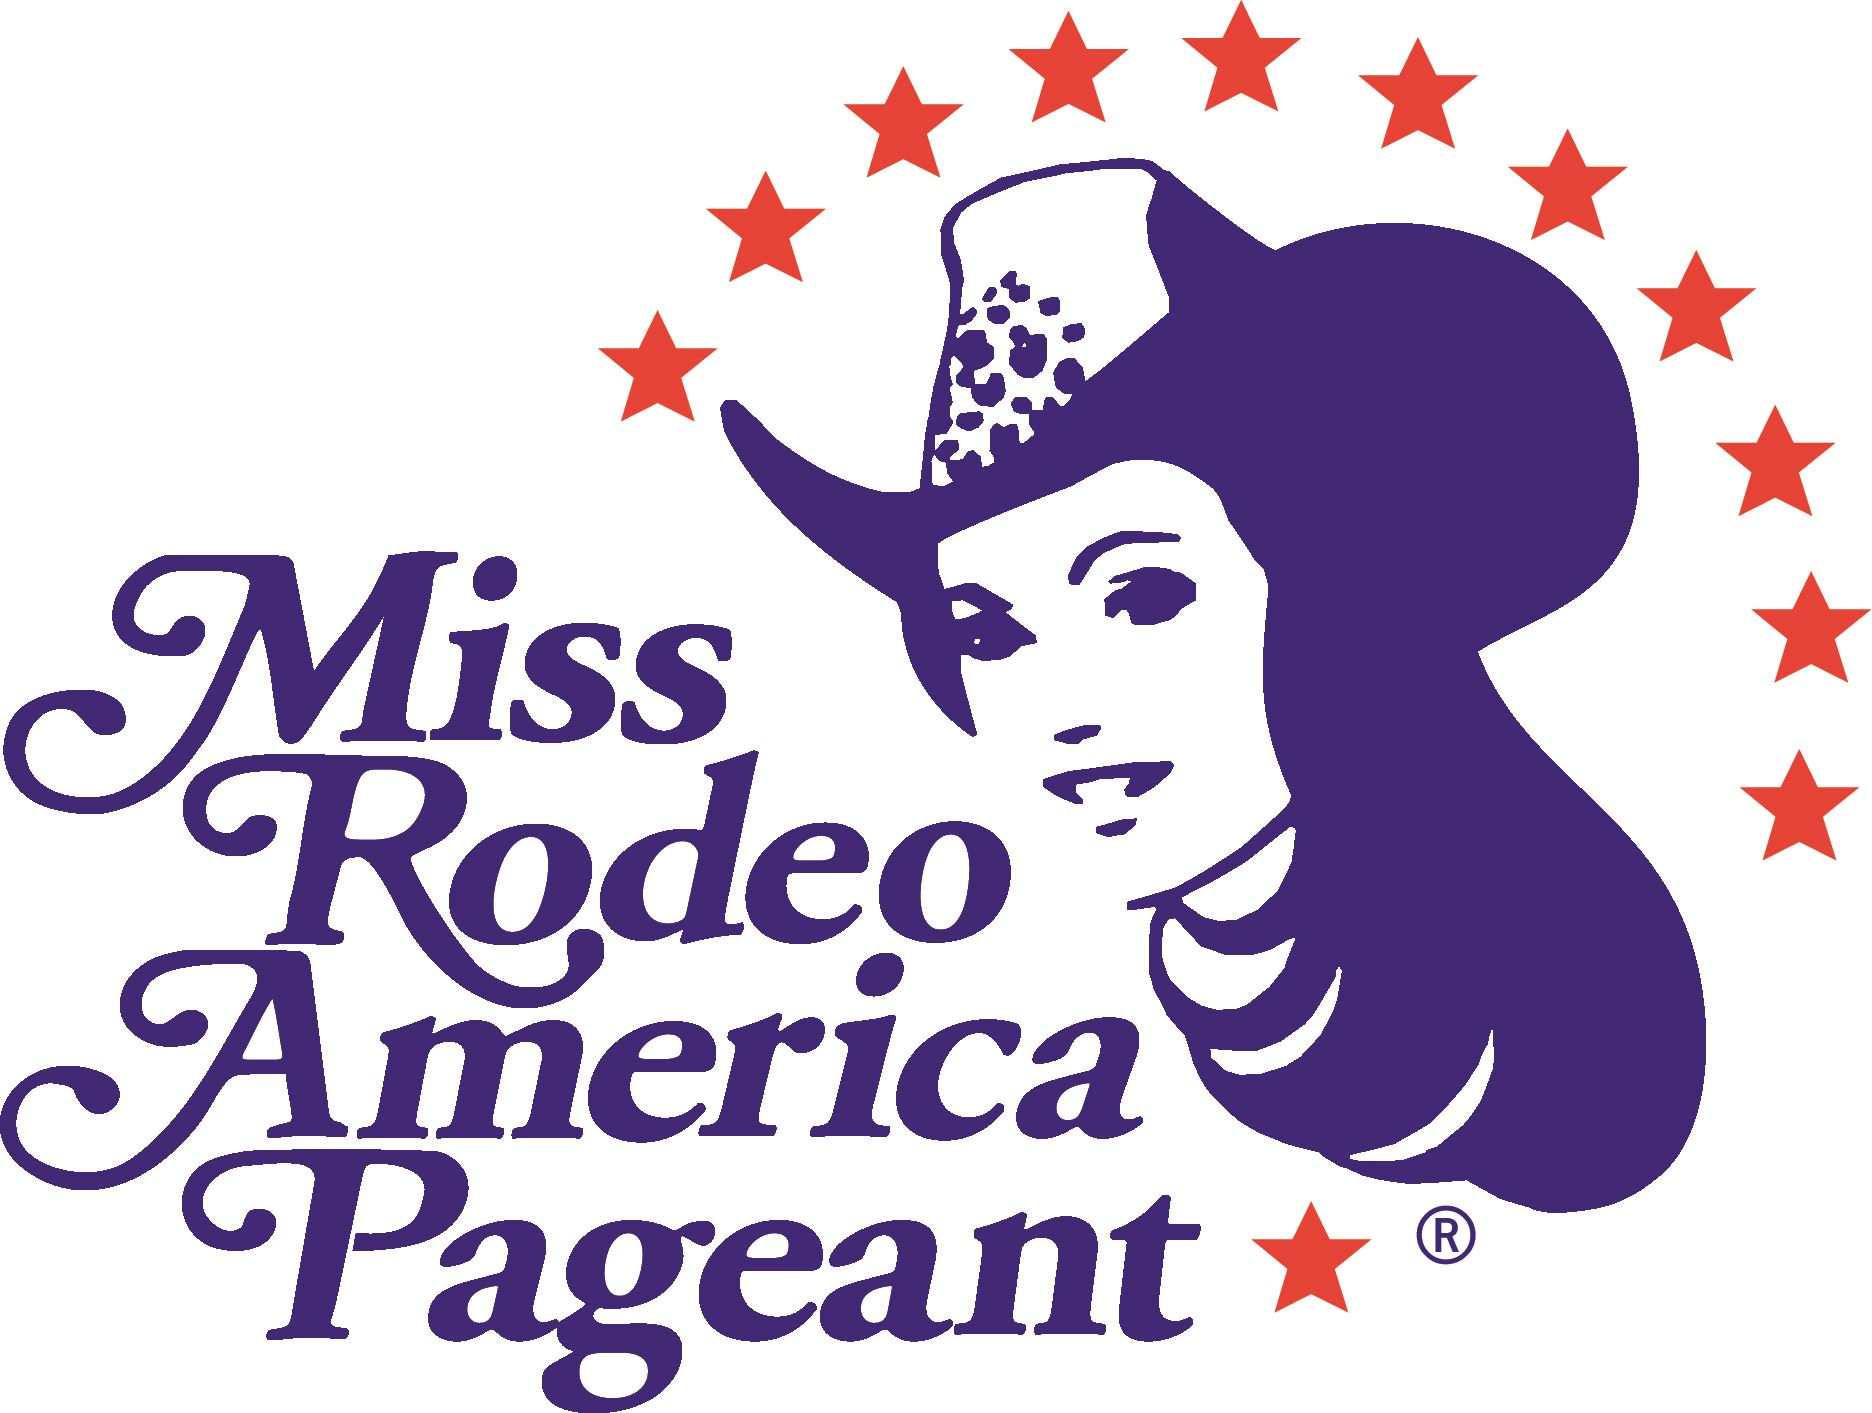 Miss Rodeo America 2020 Pageant